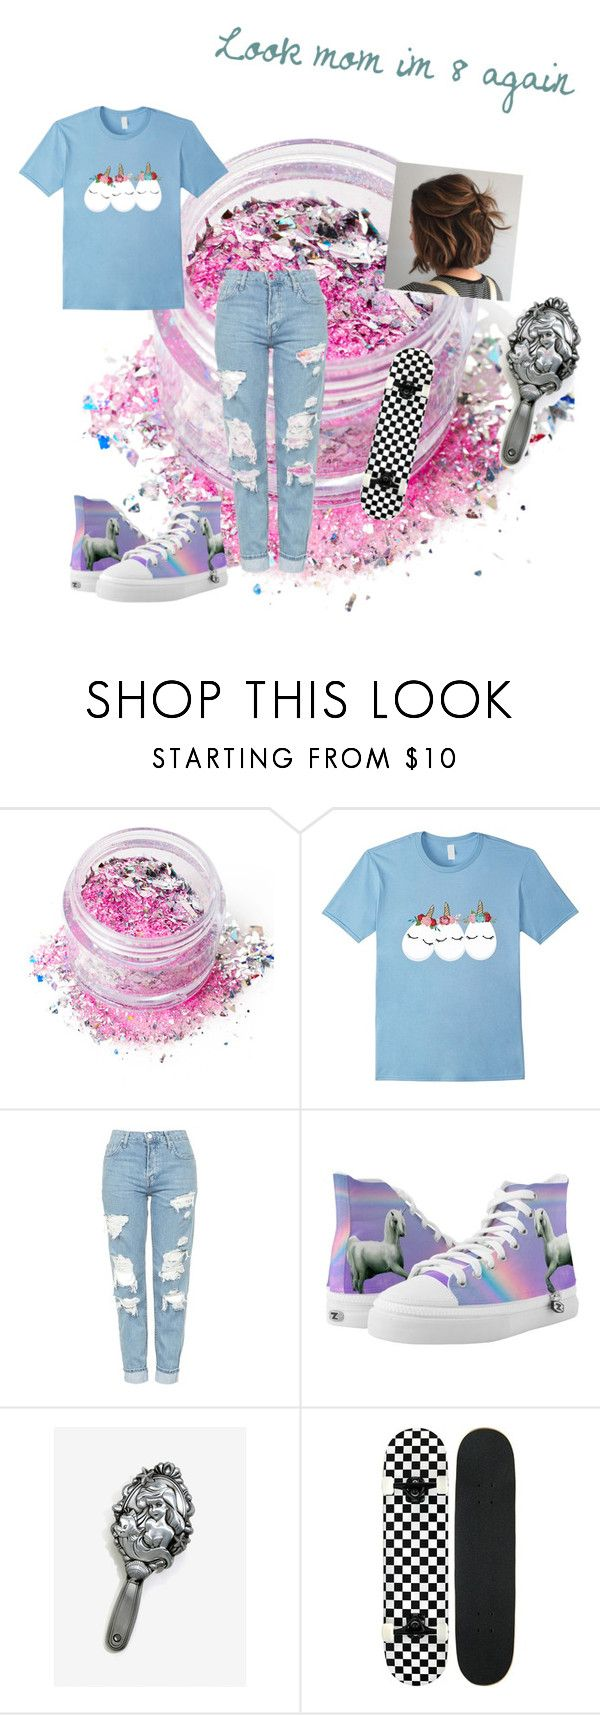 Unicorns Rule mom! by gaming97 on Polyvore featuring, Topshop and In Your Dreams